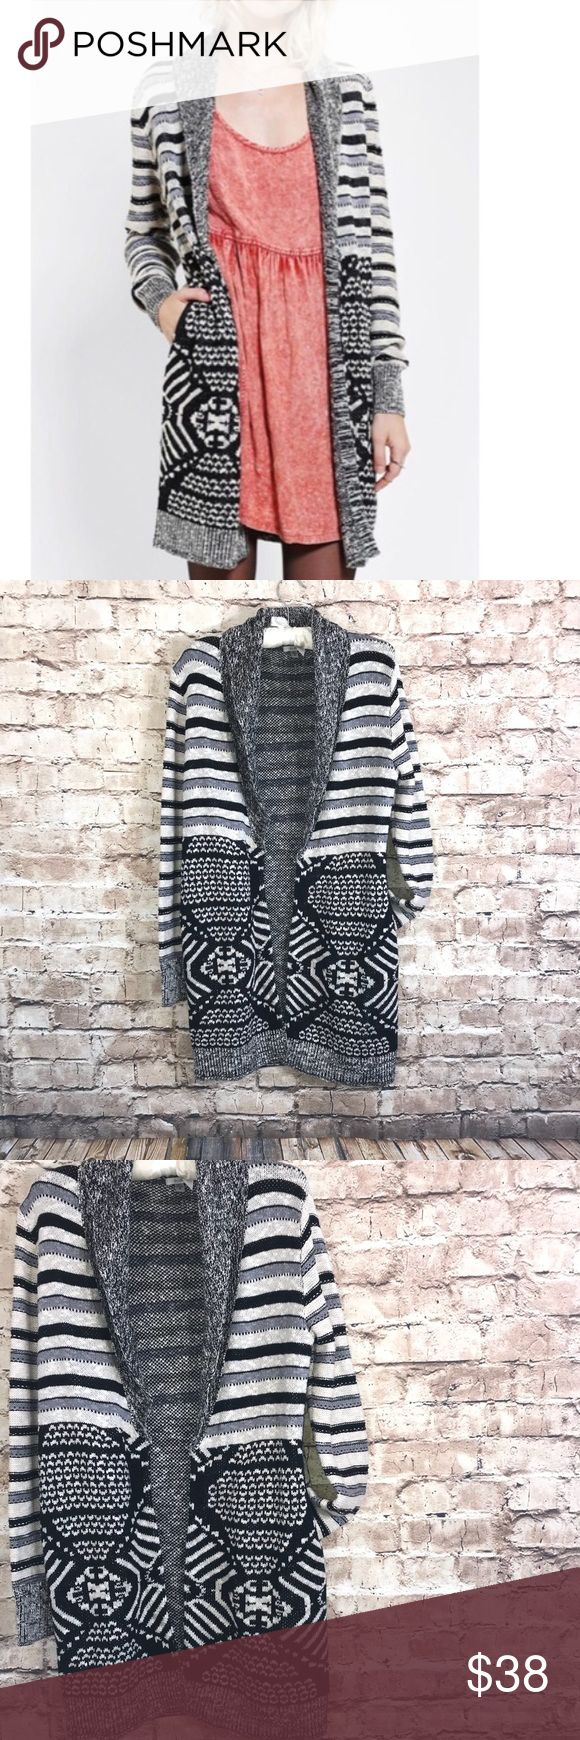 """UO Ecote Long Open Front Striped Tribal Cardigan Urban Outfitters Ecote Long Open Front Striped Tribal Cardigan Sweater. Size Small. 58 Cotton 42 Acrylic. Soft and comfortable. Black, gray and off white. Pockets  Measurements - Laid Flat  19"""" Across chest  25"""" Sleeve Length  30"""" Length Urban Outfitters Sweaters Cardigans"""